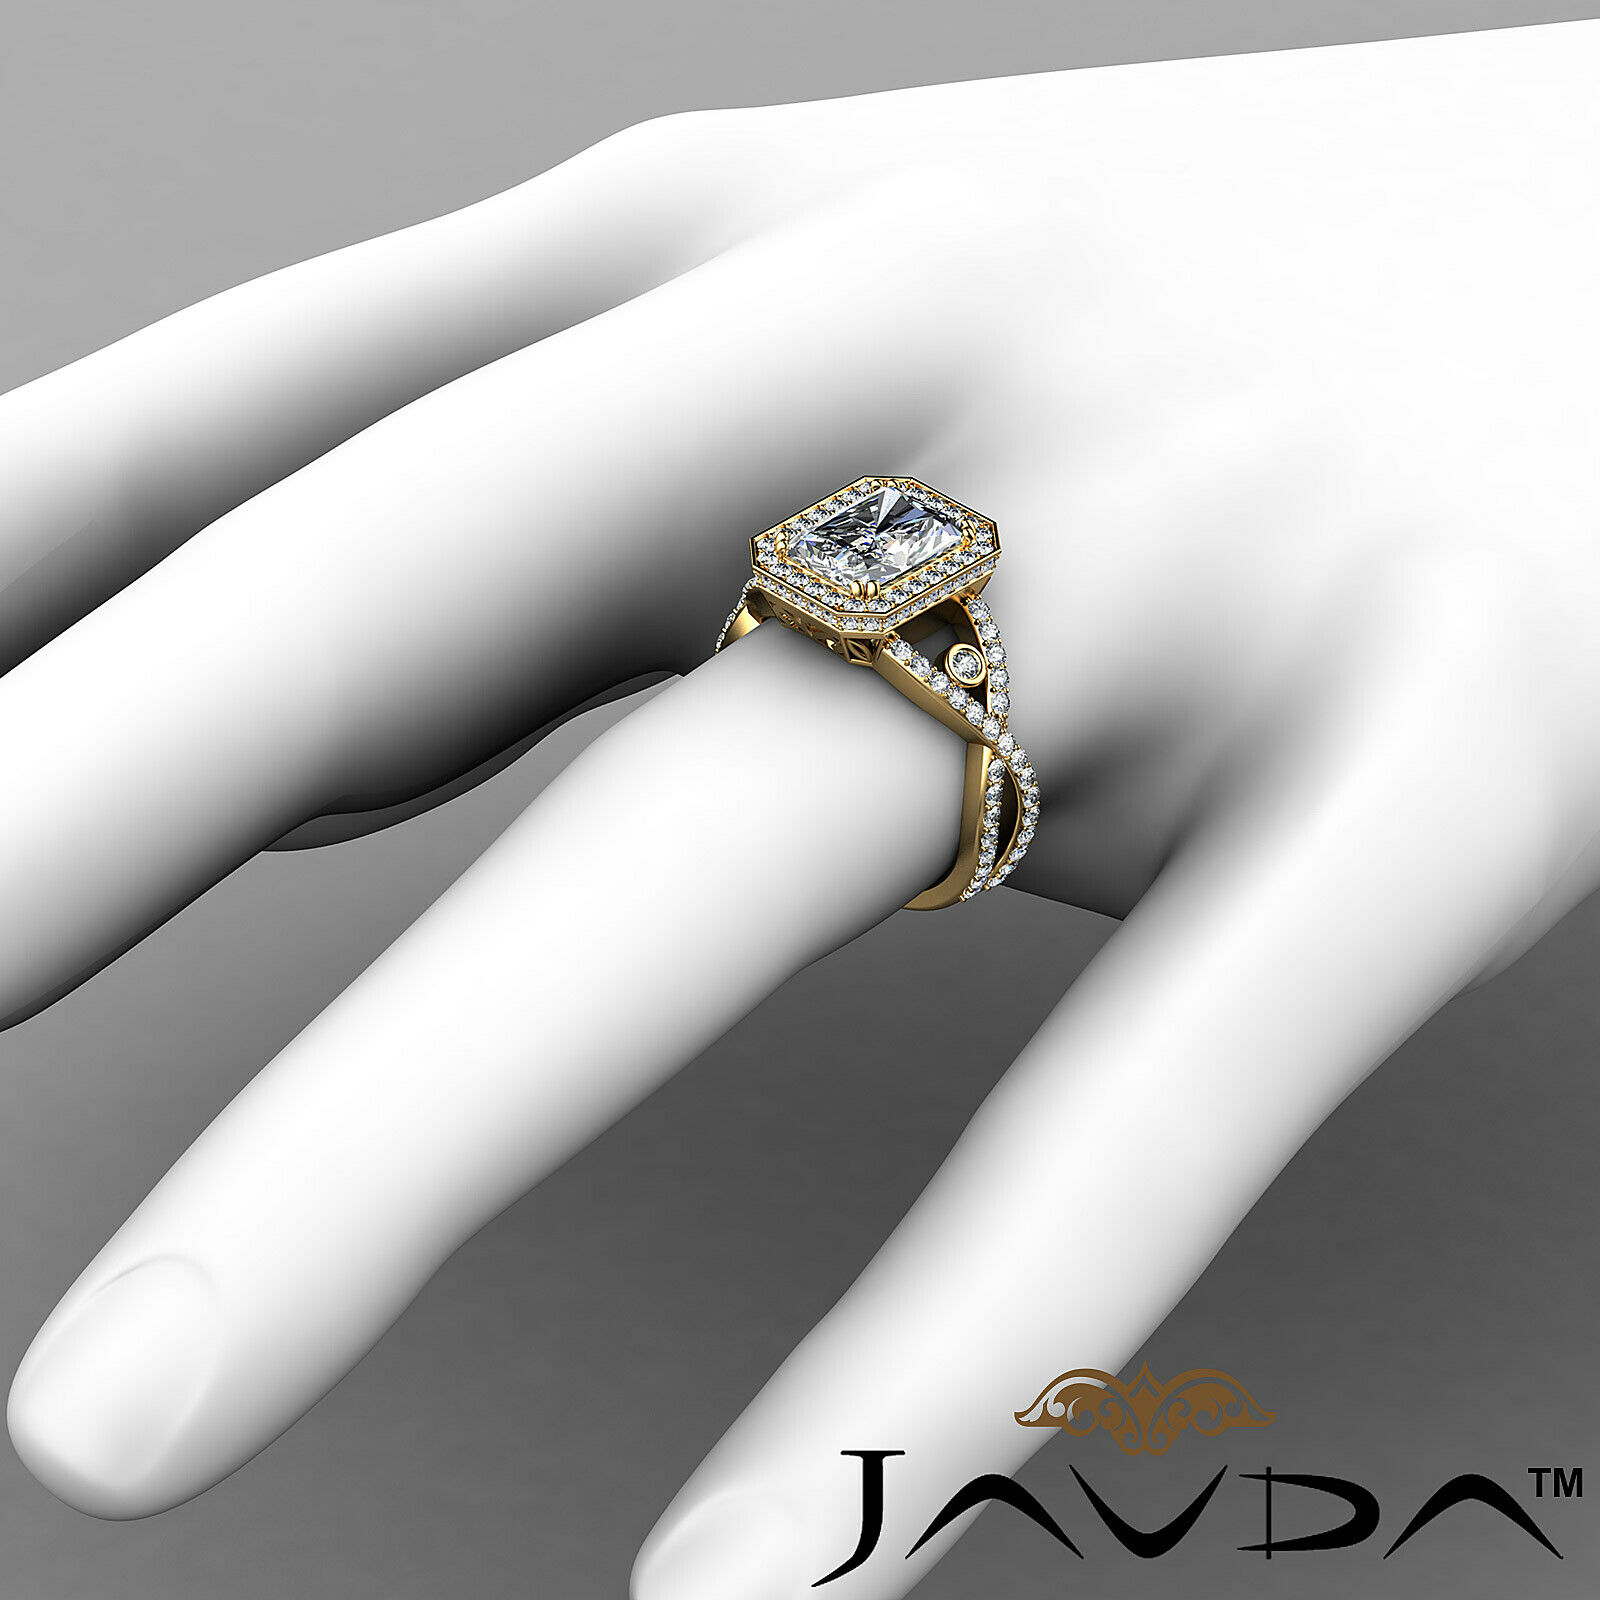 2.6ct Cross Shank Halo Pave Emerald Diamond Engagement Ring GIA F-VS1 White Gold 8